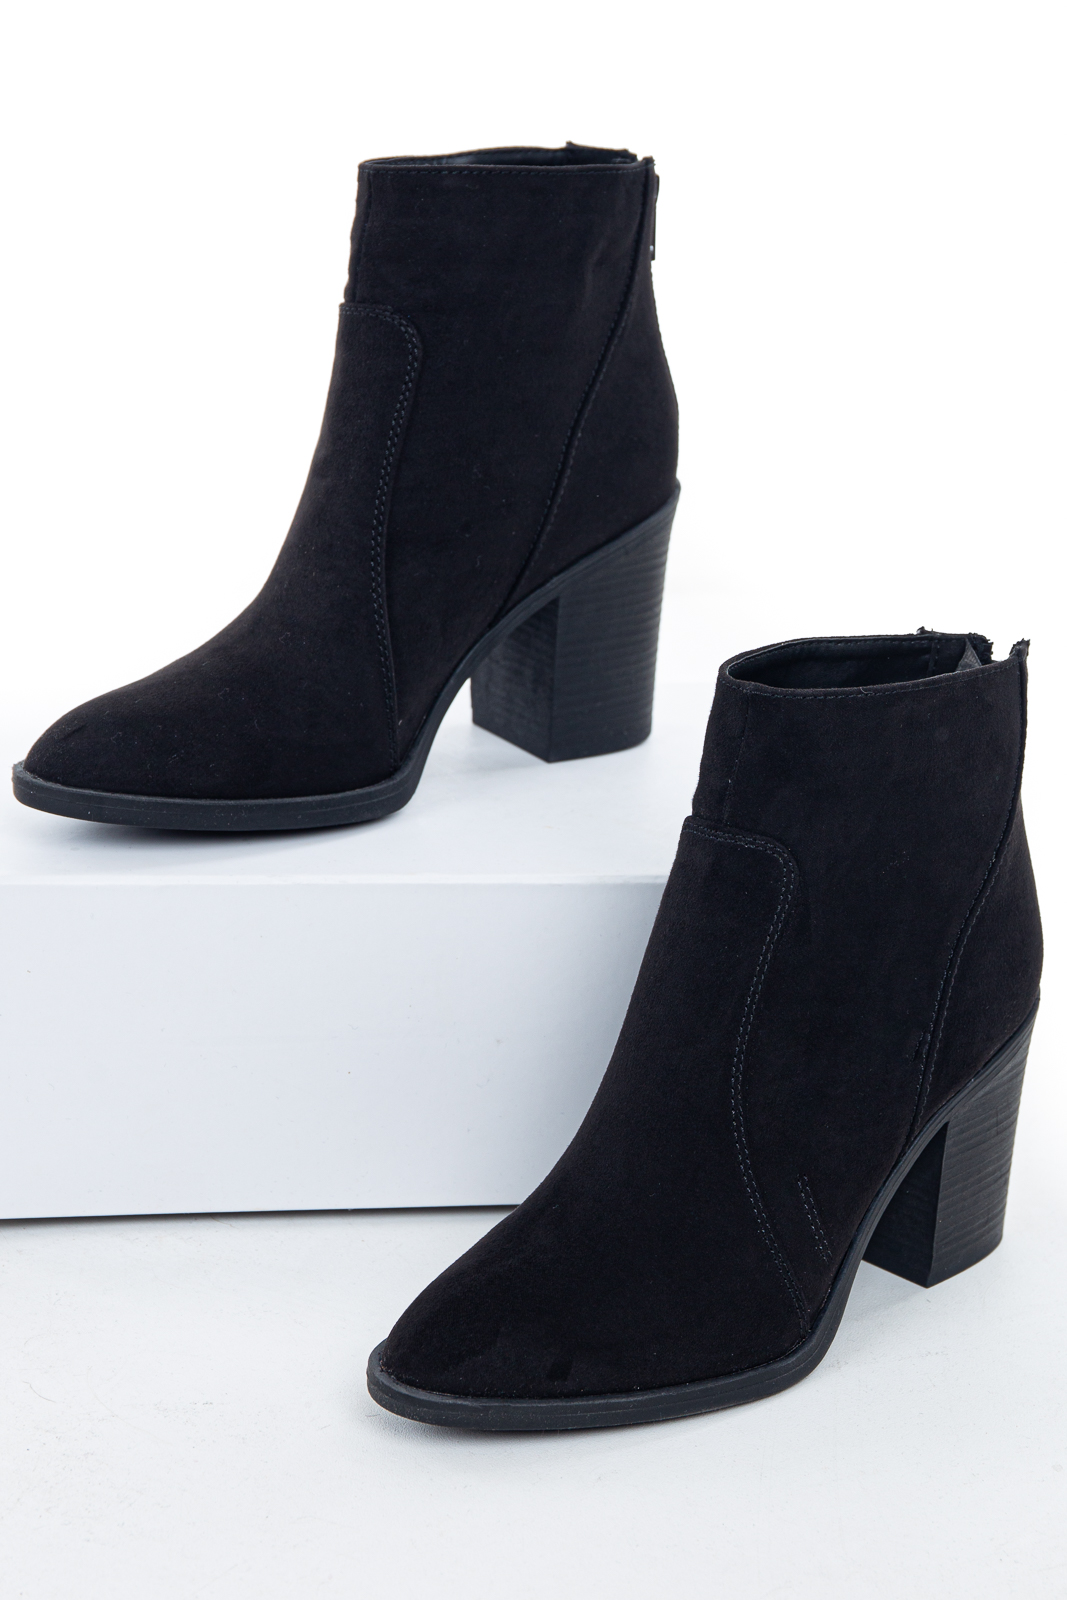 Black Pointed Toe Ankle Suede Booties with Block Heel